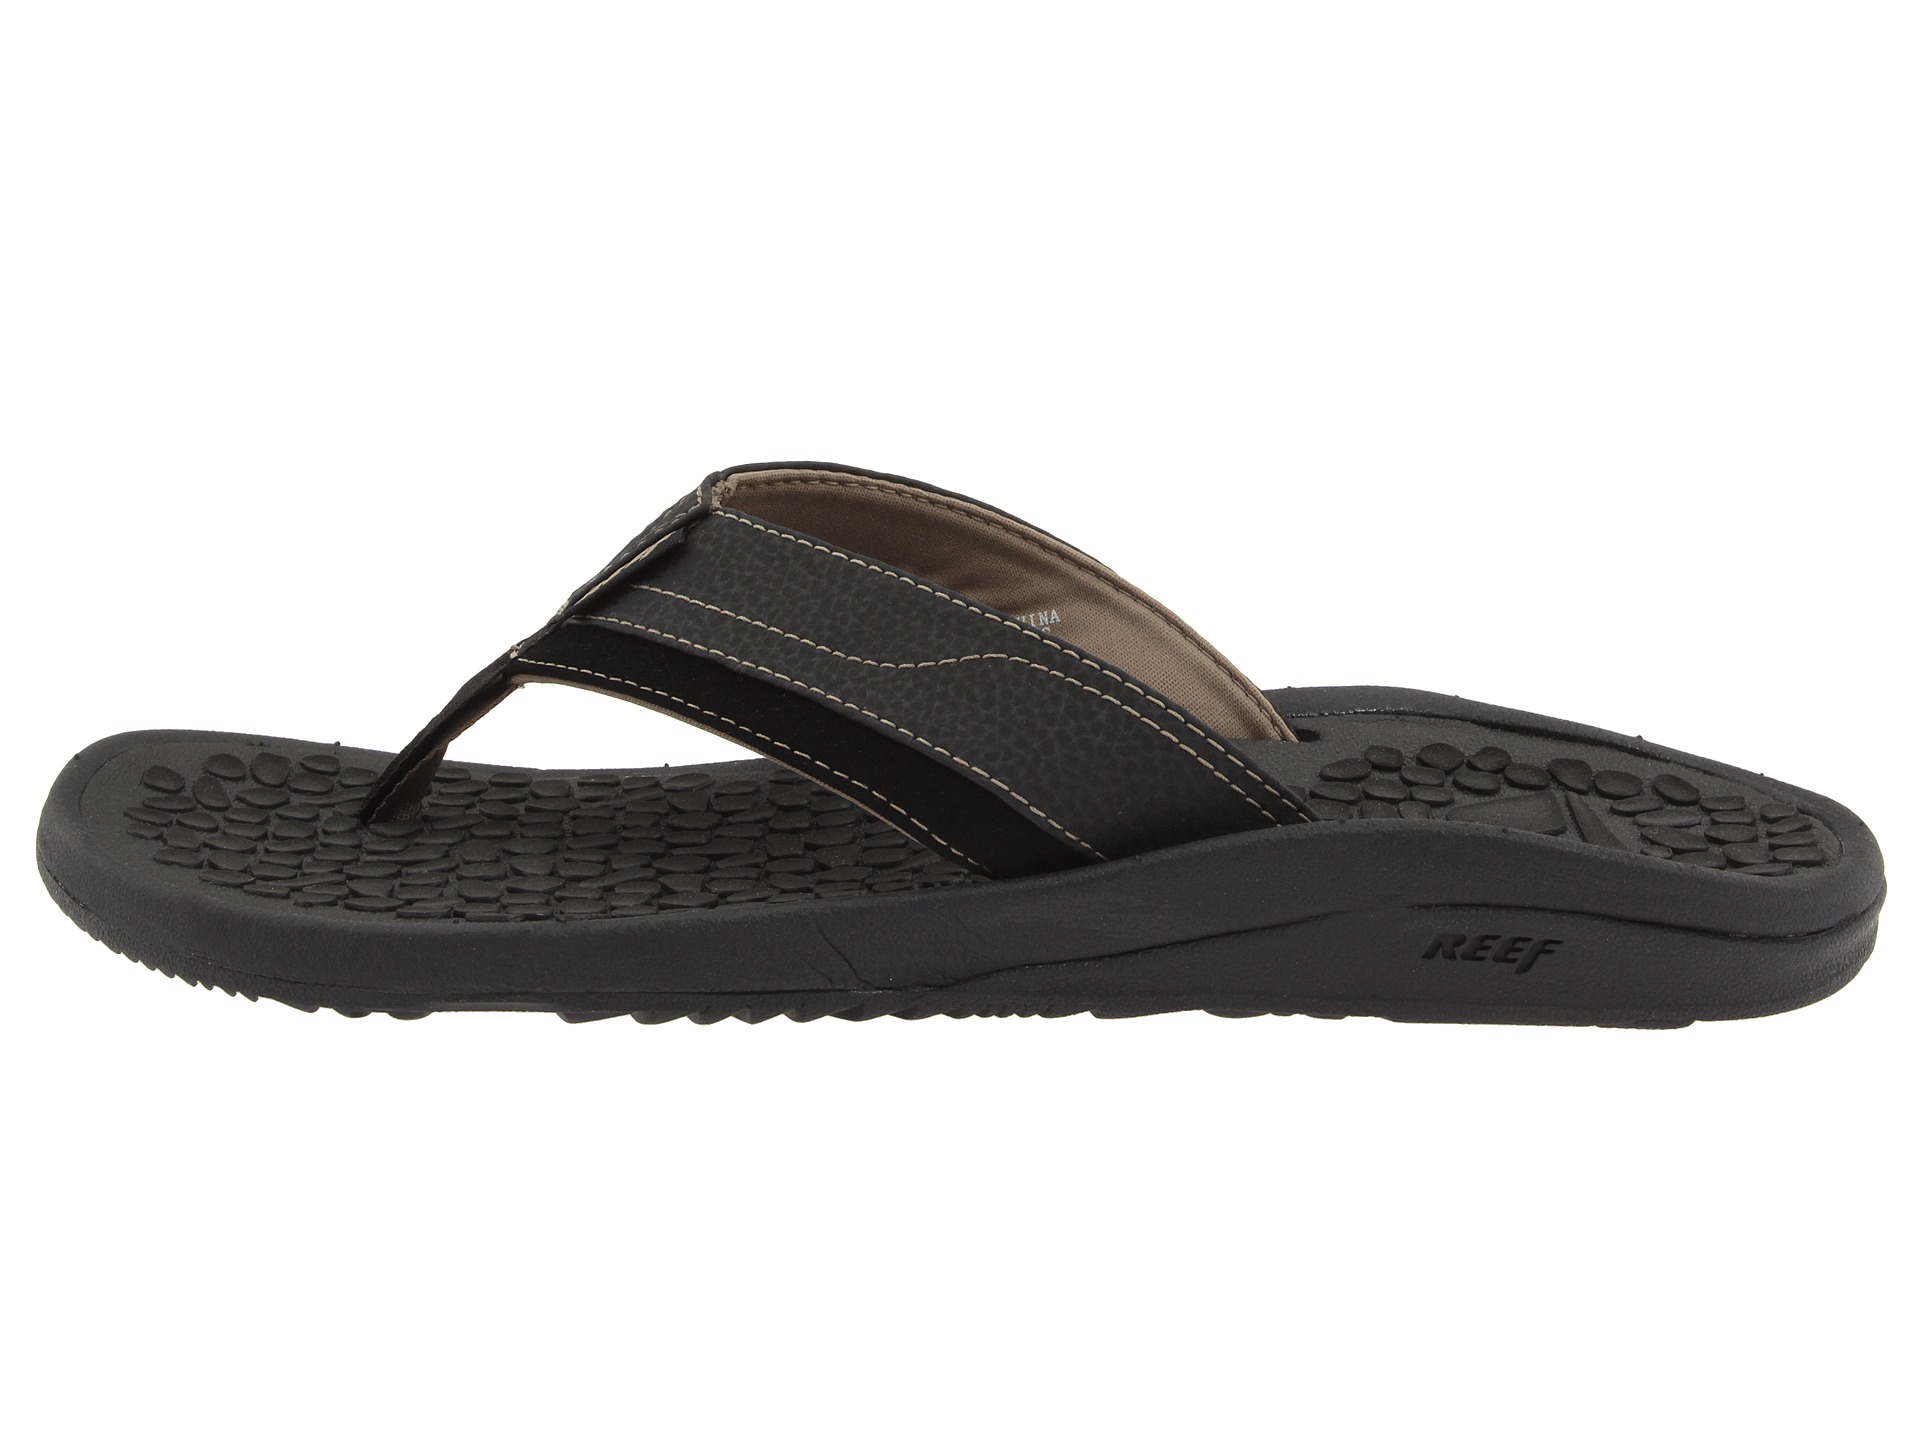 ae691c1f9f5e Lyst - Reef Playa Negra in Black for Men